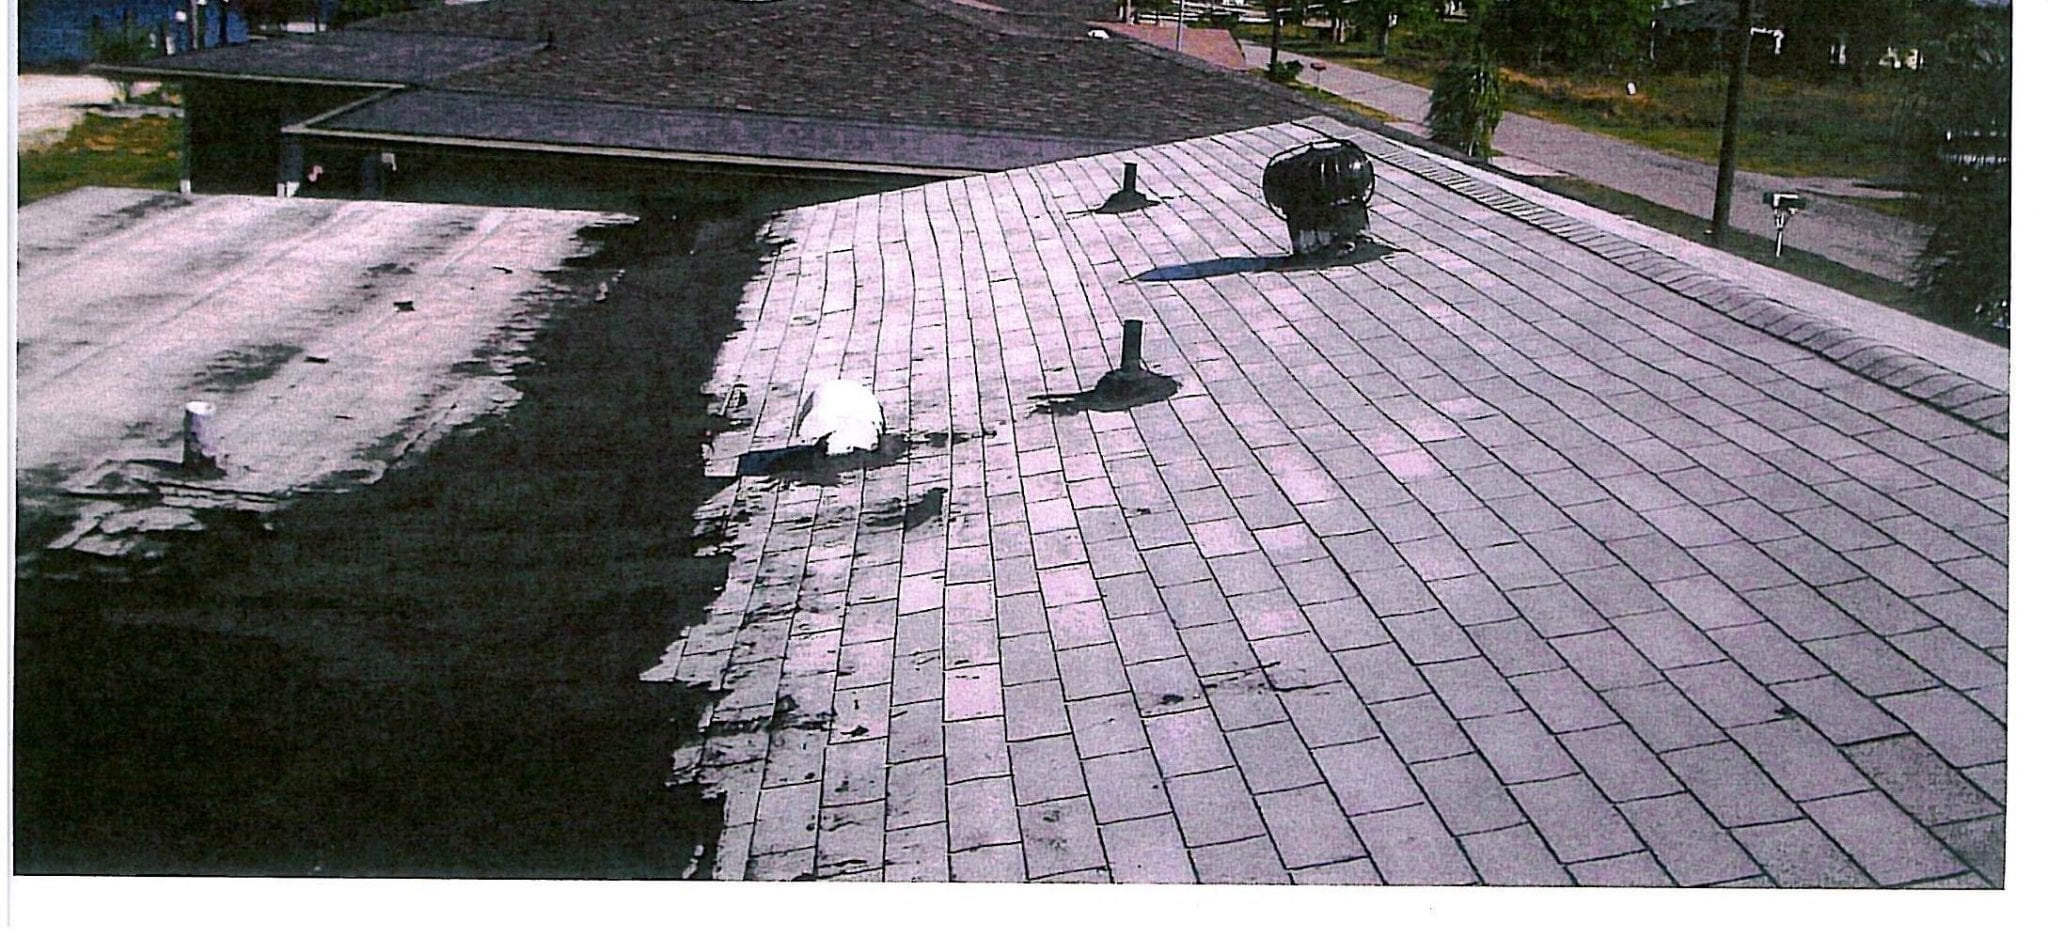 Seven Ways To Make Sure Your Roofing Contractor Will Rip